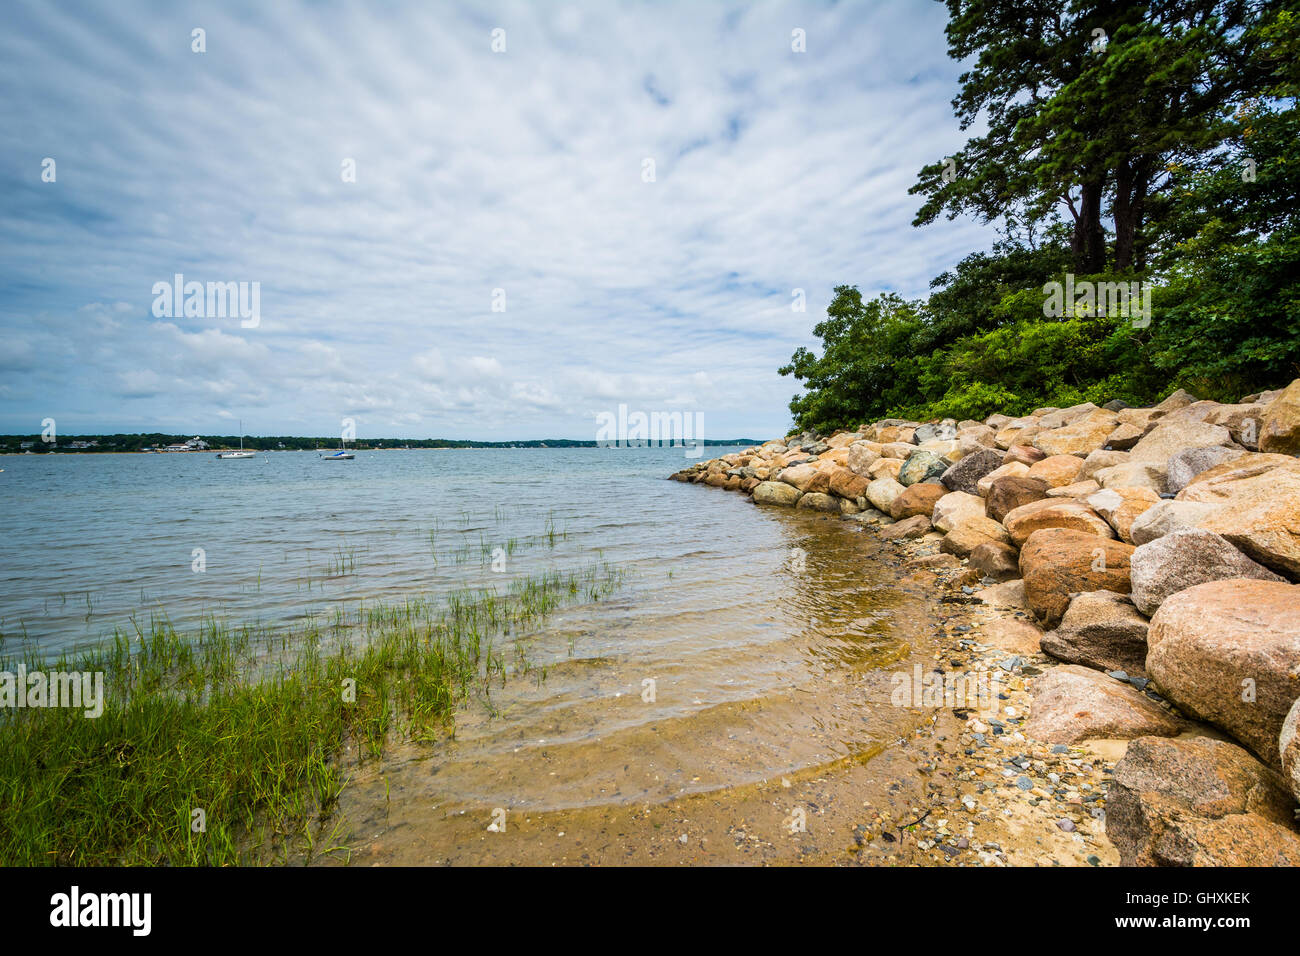 Rocky coast in Chatham, Cape Cod, Massachusetts. - Stock Image